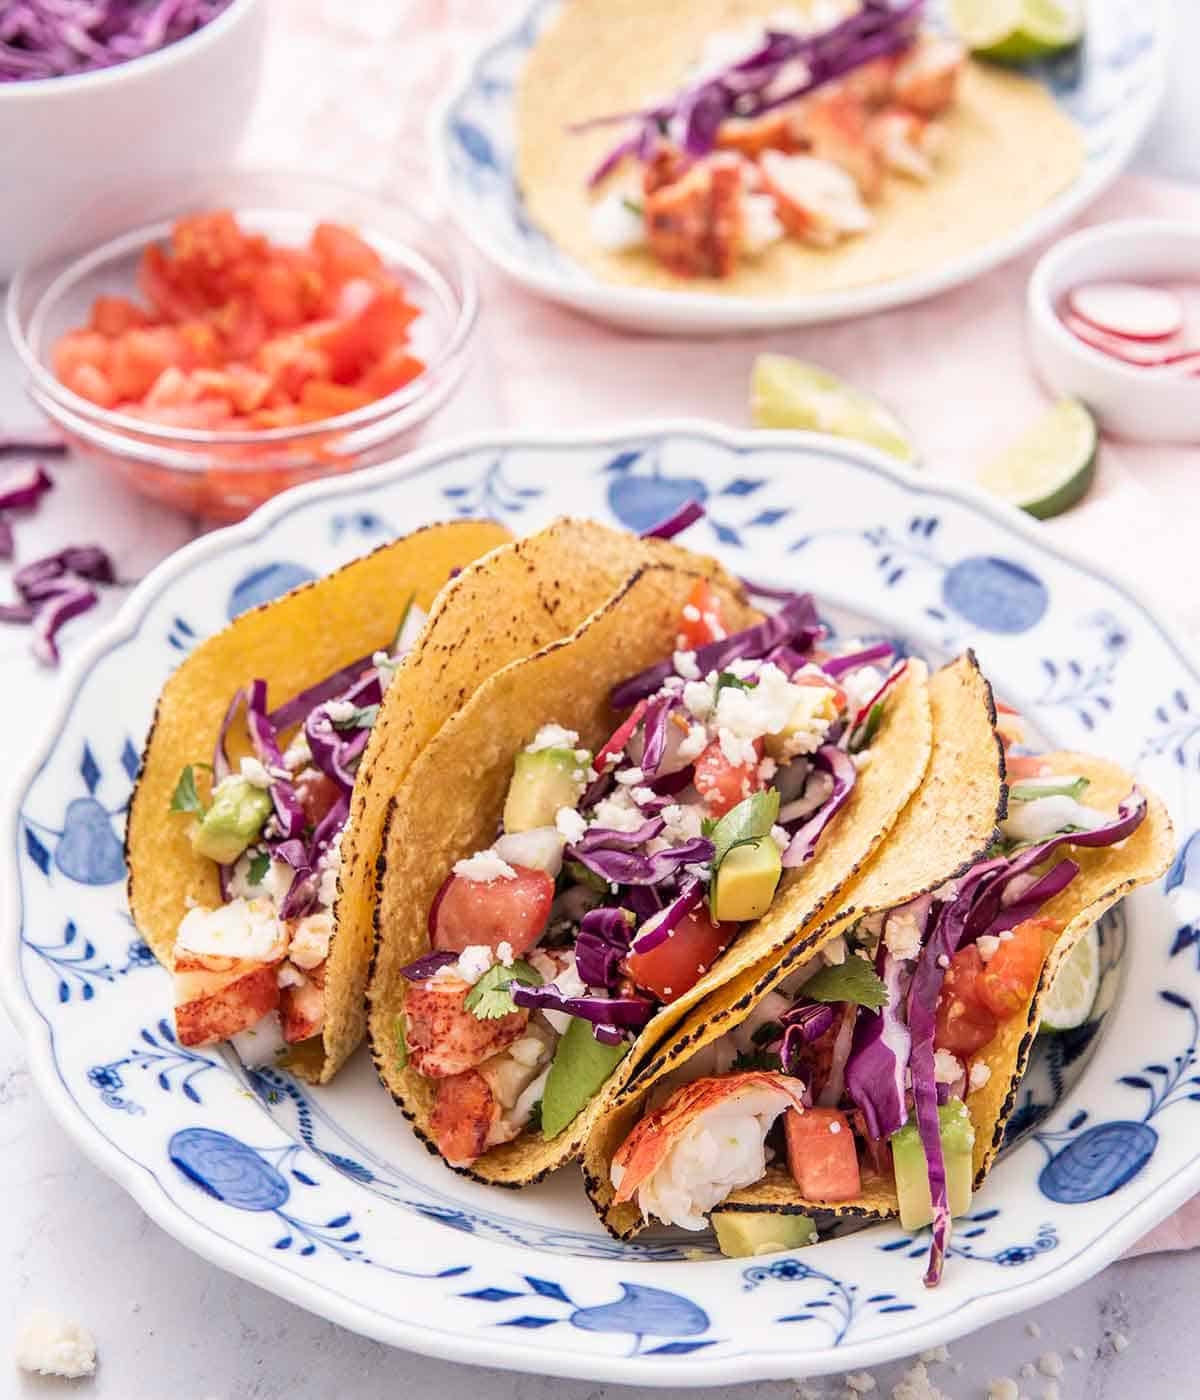 A blue and white plate holding three lobster tacos in a corn tortilla with ingredients in bowls in the background.